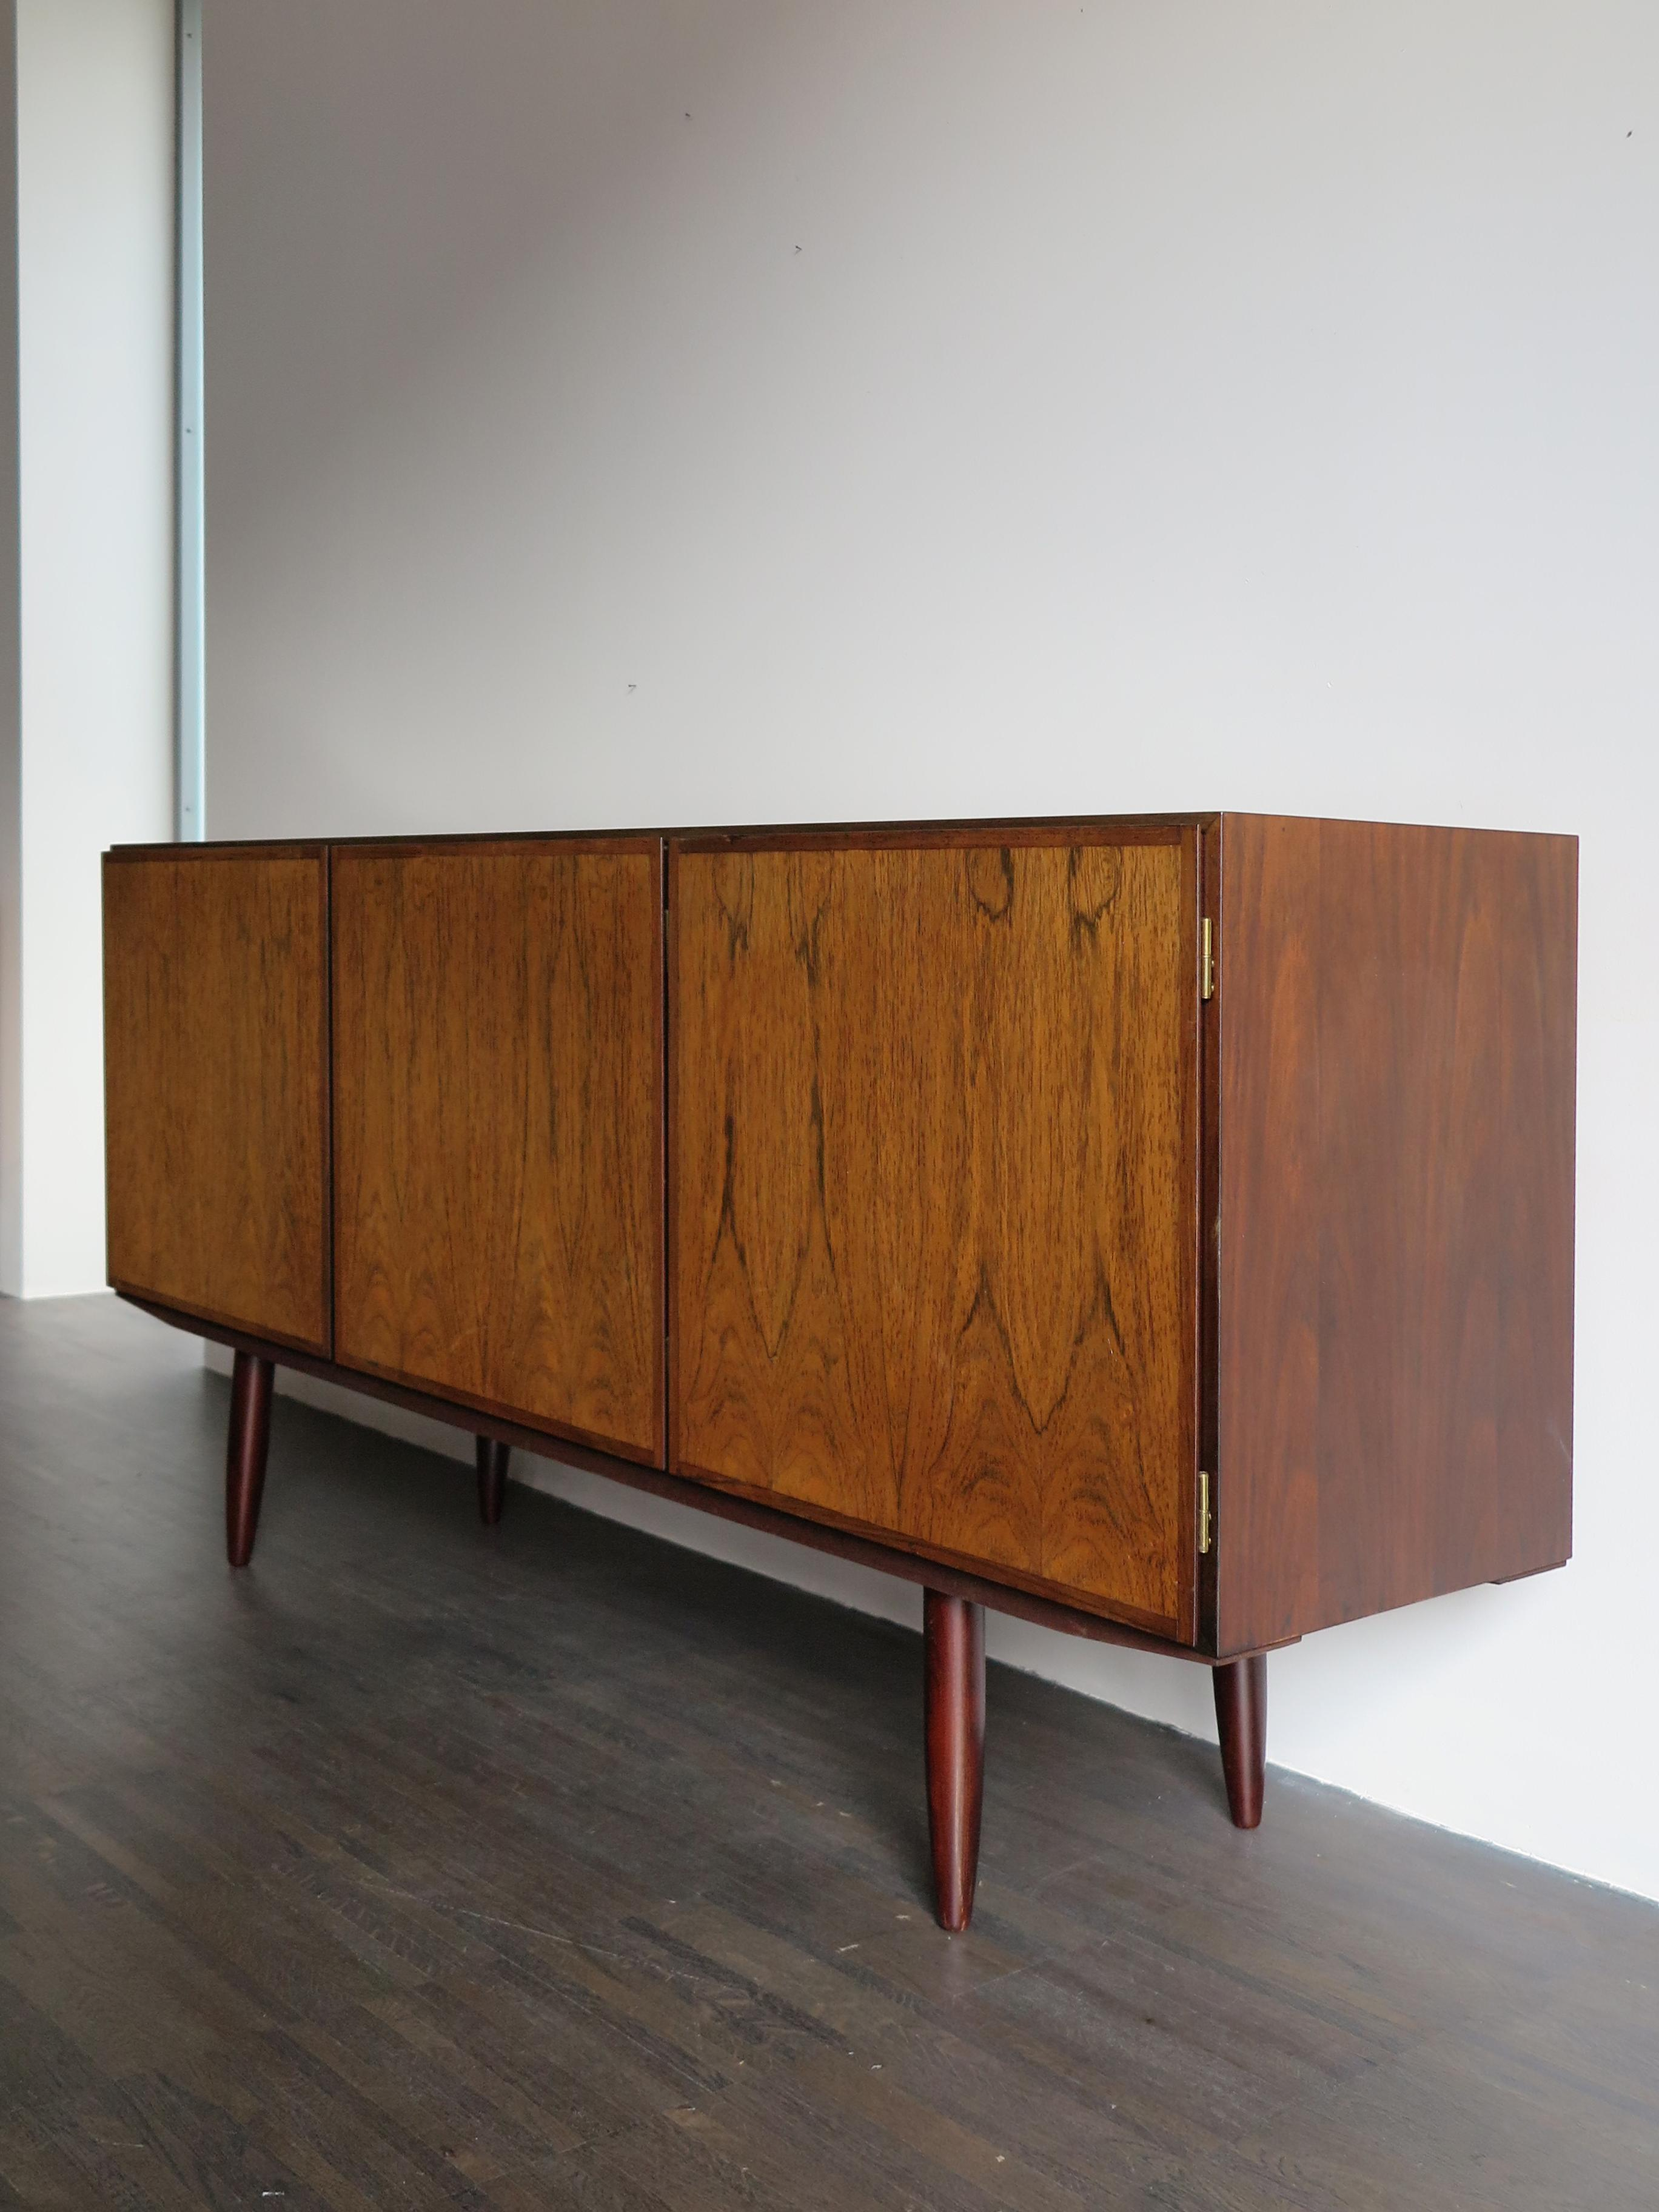 1960S Scandinavian Rosewood Midcentury Modern Sideboard Pertaining To Mid Century Modern Scandinavian Style Buffets (Gallery 17 of 30)